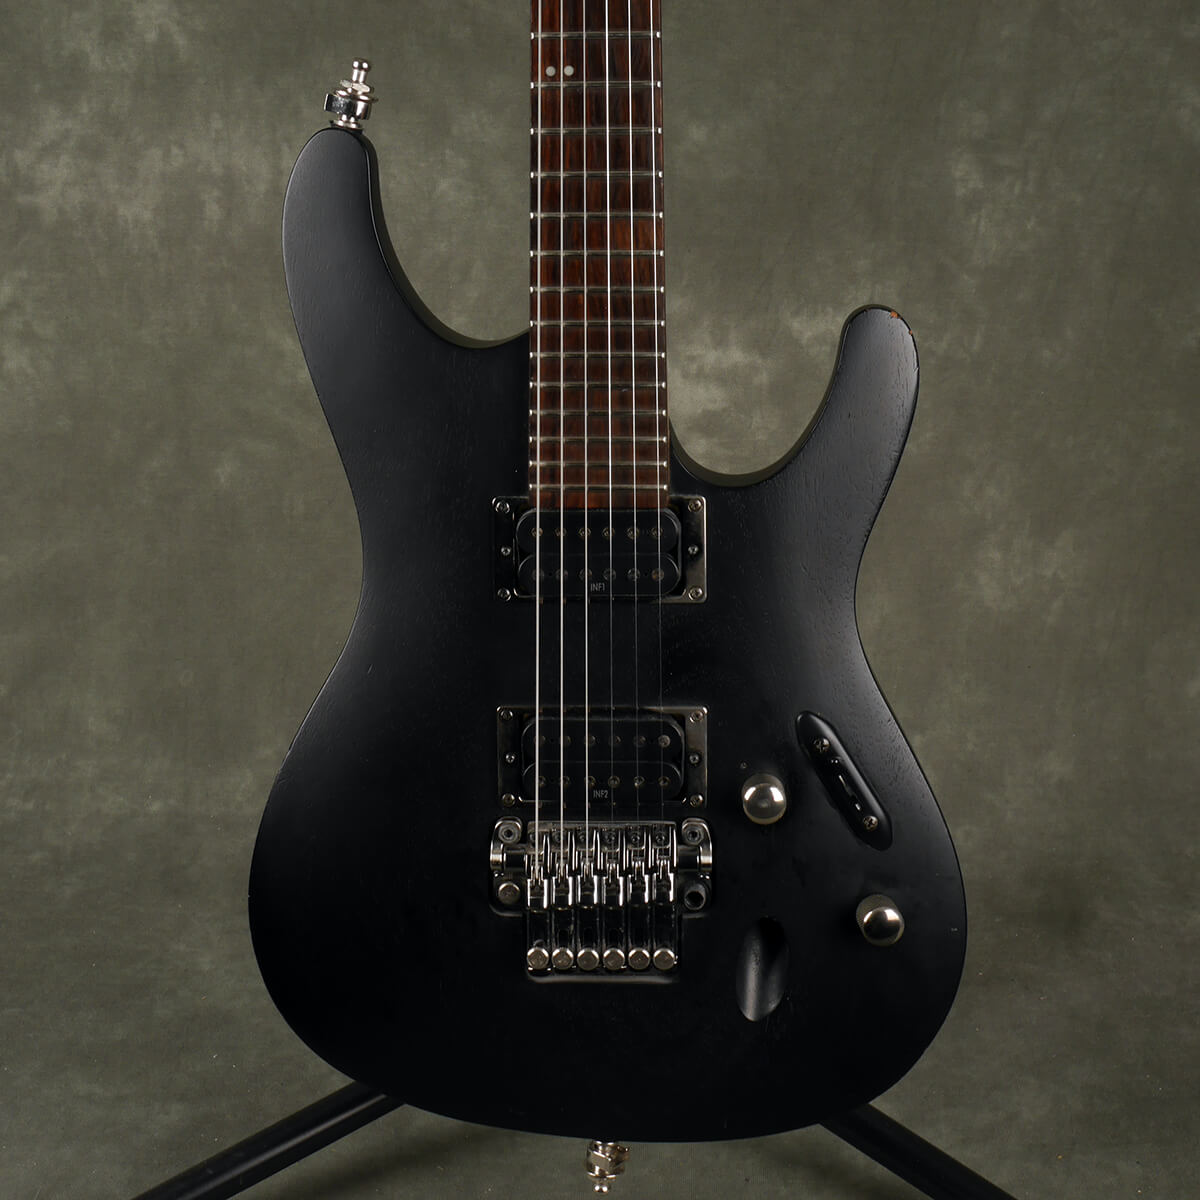 Ibanez S420 Electric Guitar - Black - 2nd Hand